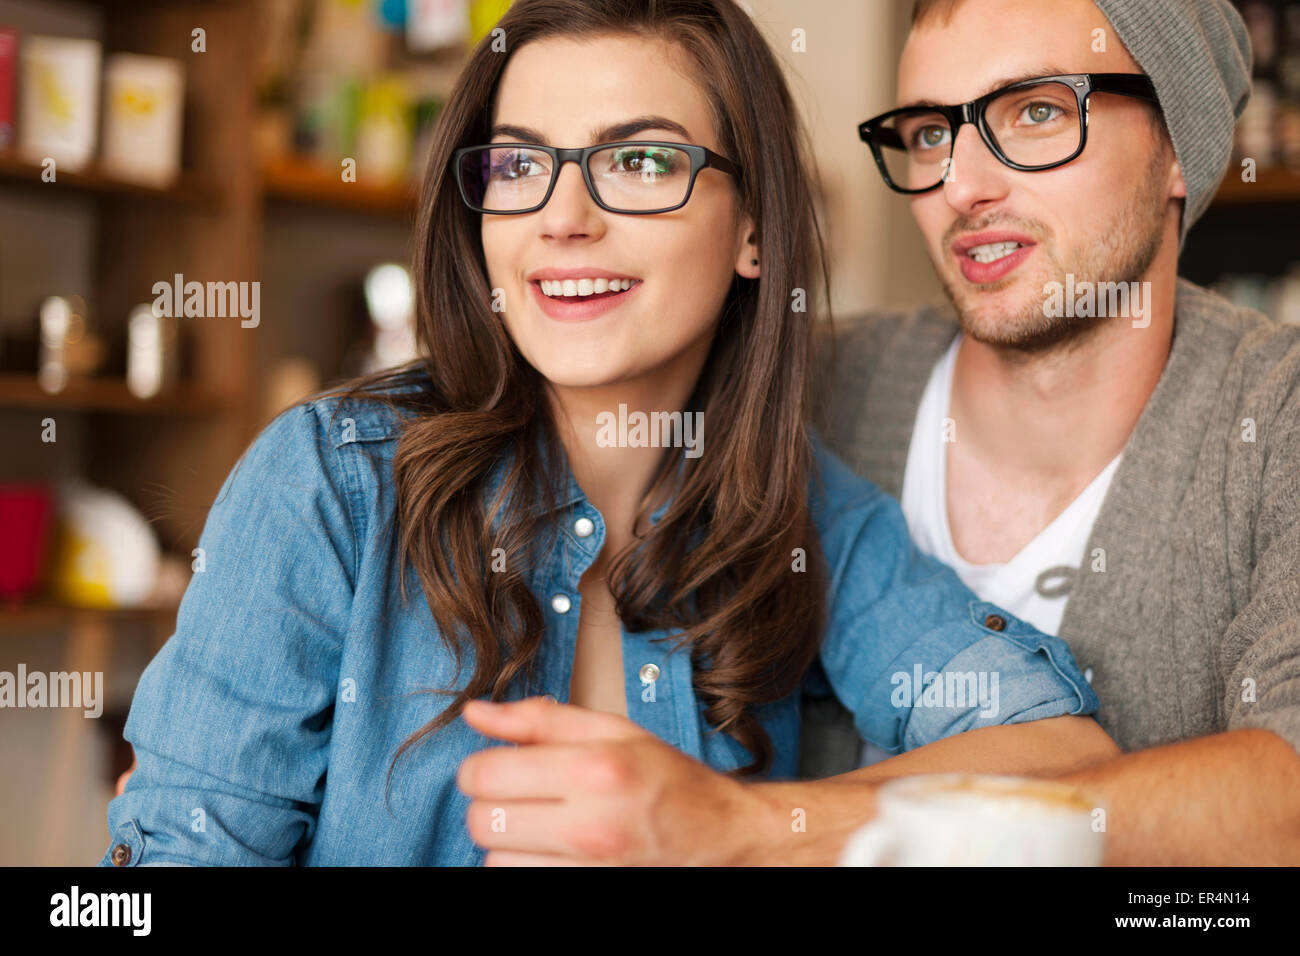 Hipster young couple at cafe. Krakow, Poland Stock Photo